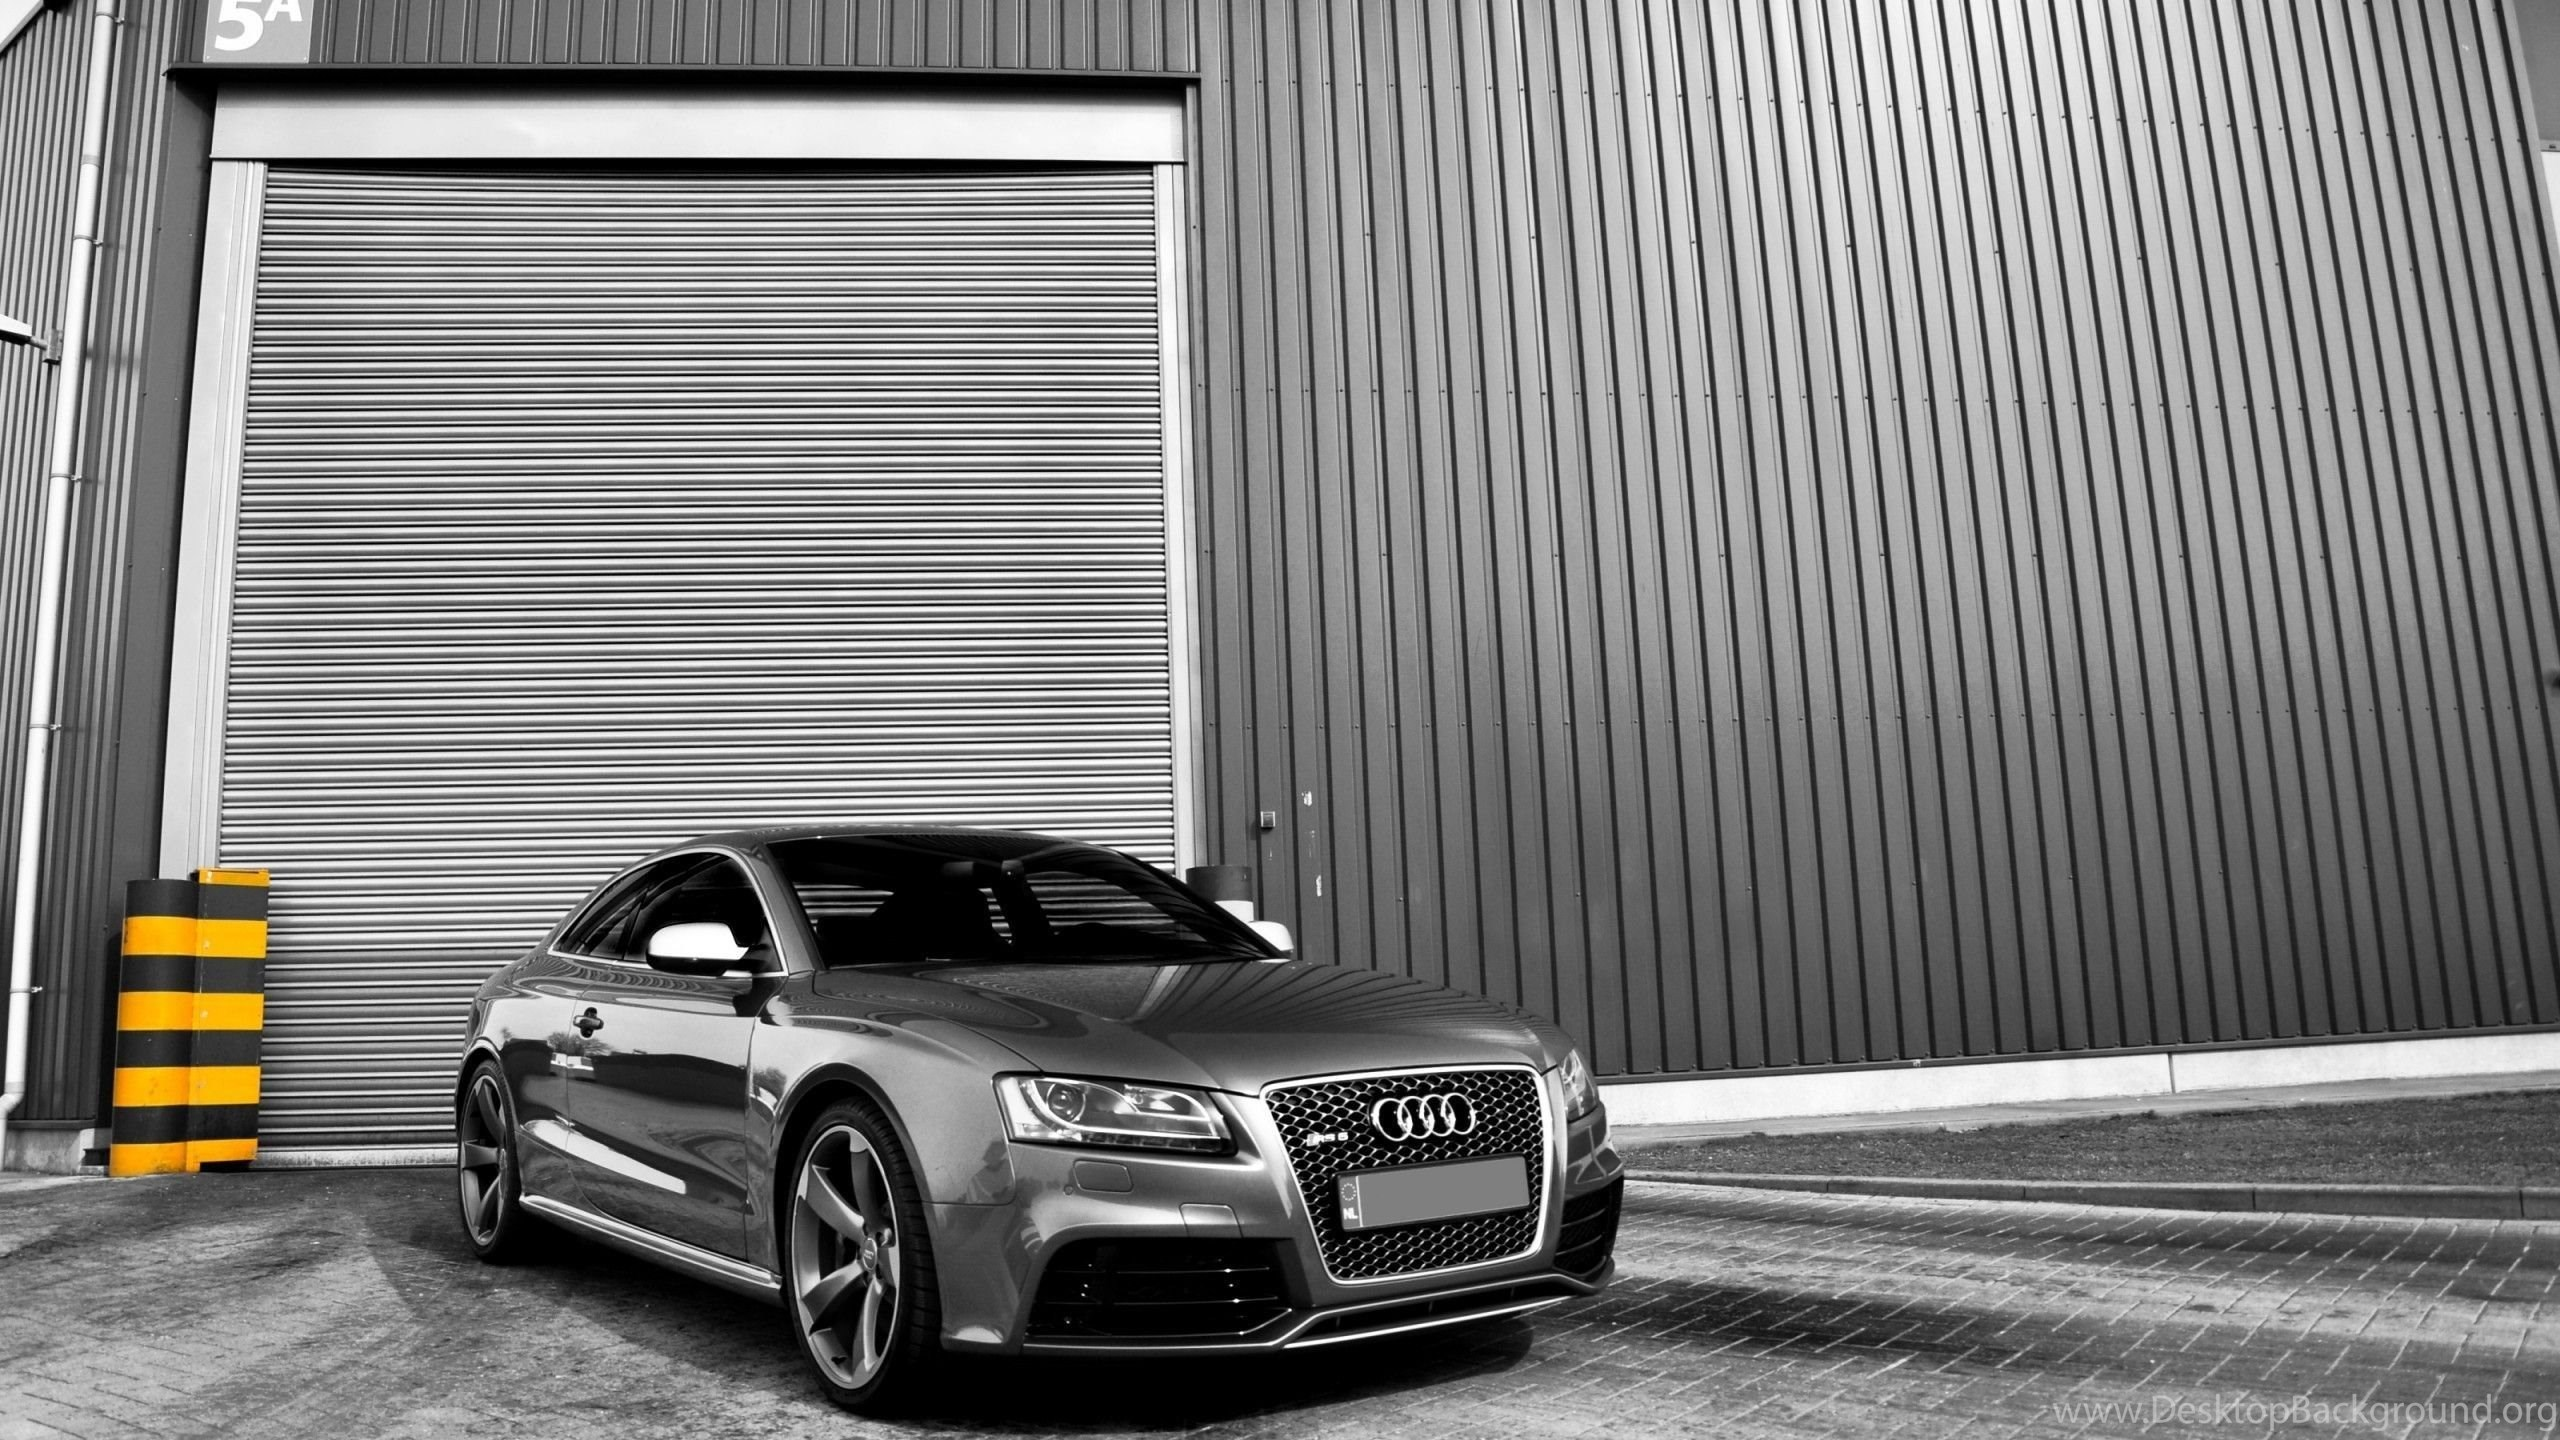 Audi Rs5 Wallpapers Wallpapers Cave Desktop Background